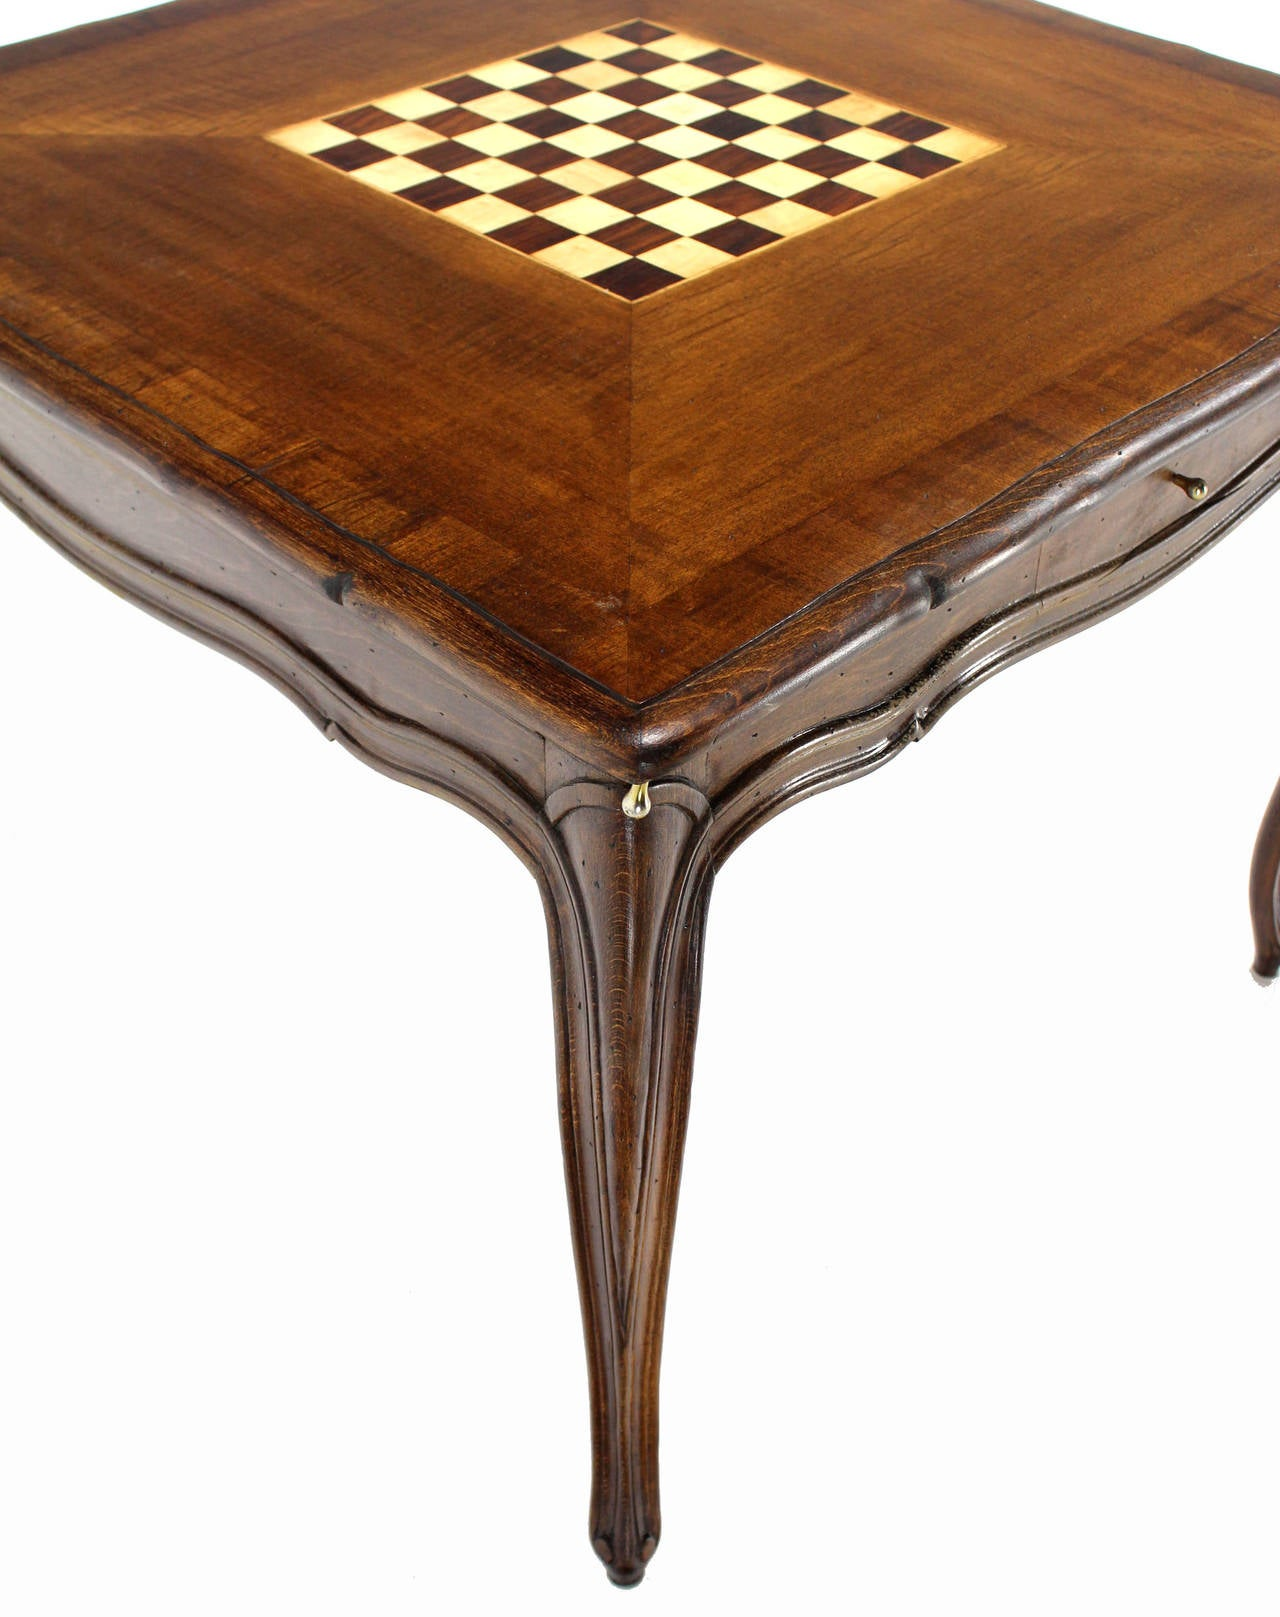 American Walnut Game Table With Built In Chess Board For